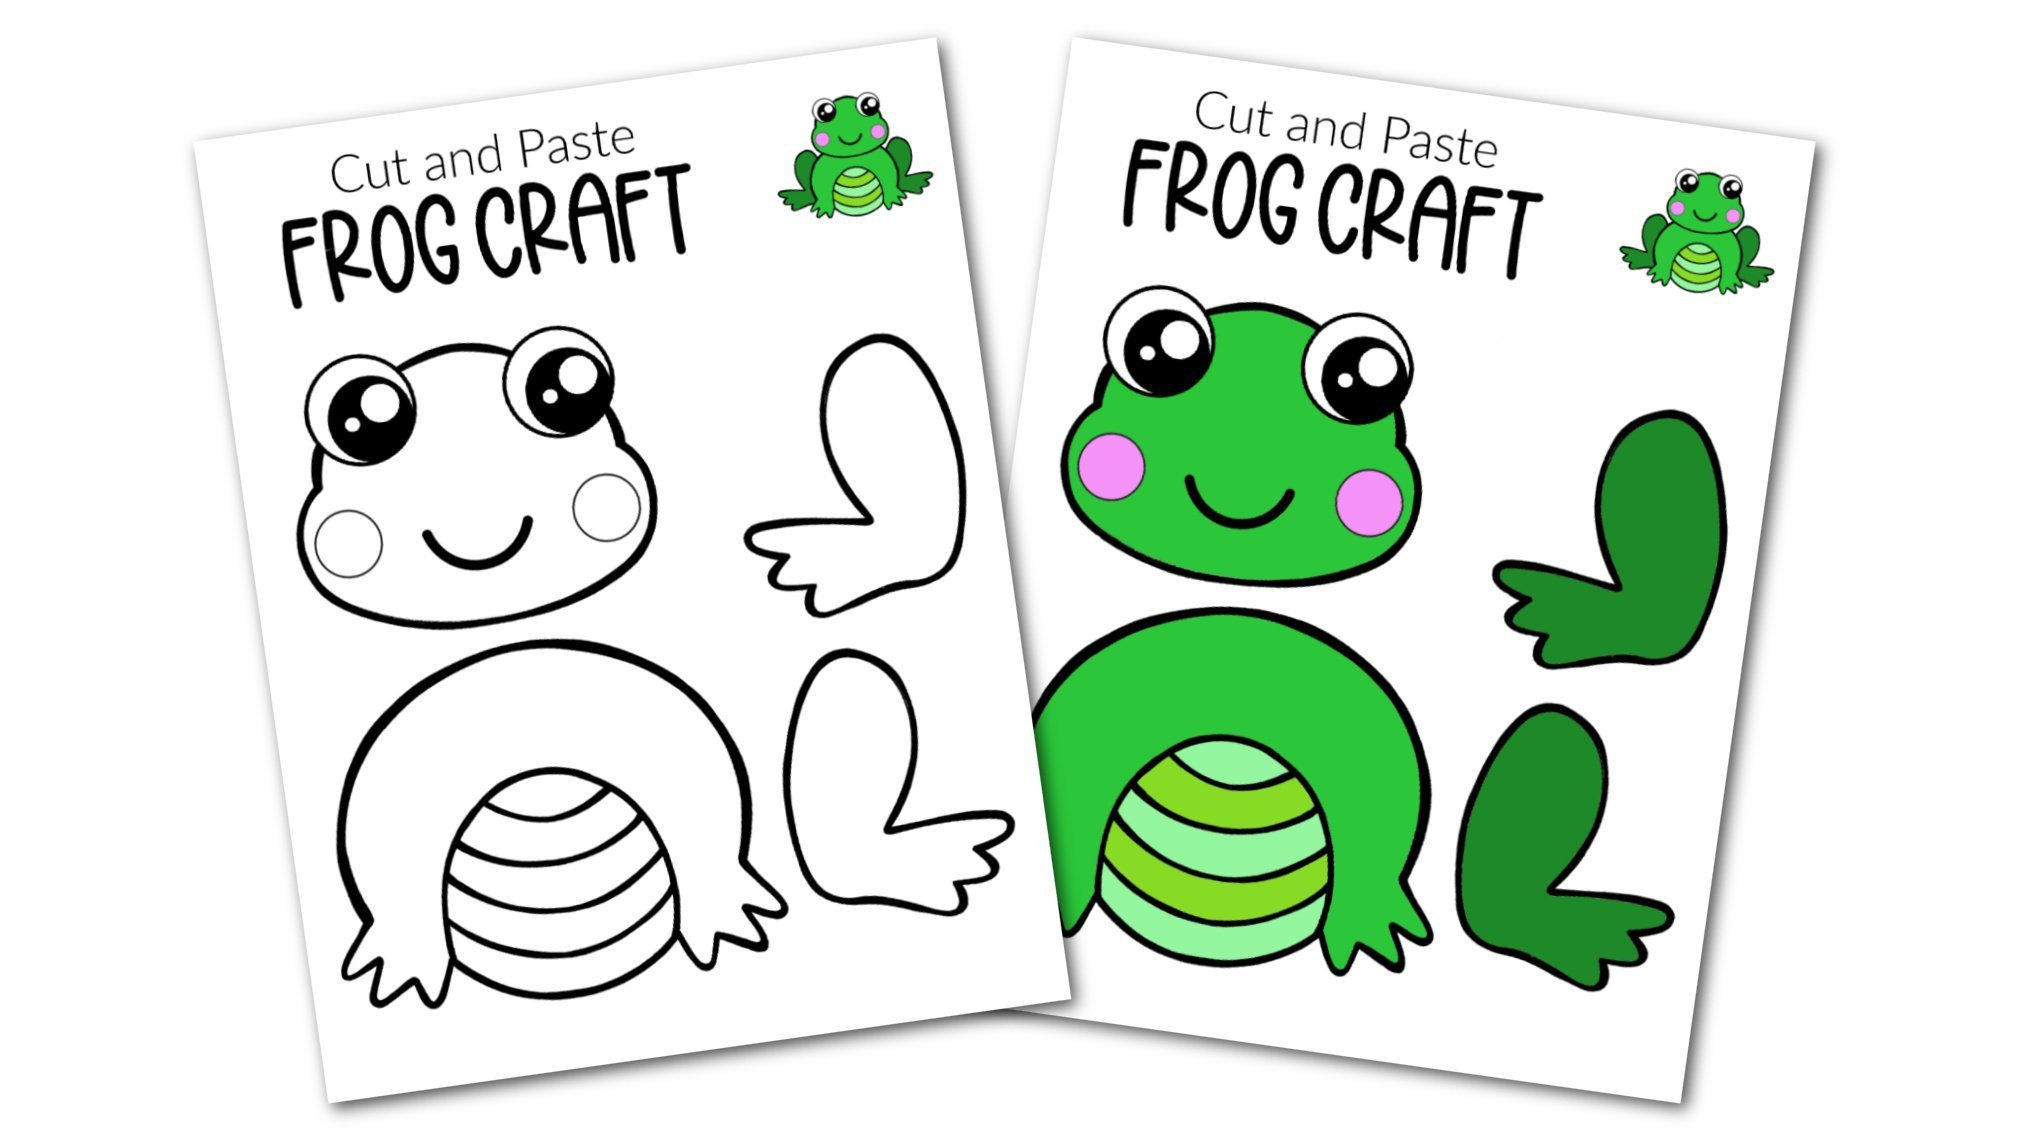 Free Printable Cut and Paste Frog Craft Template Craft for kids, preschoolers and toddlers